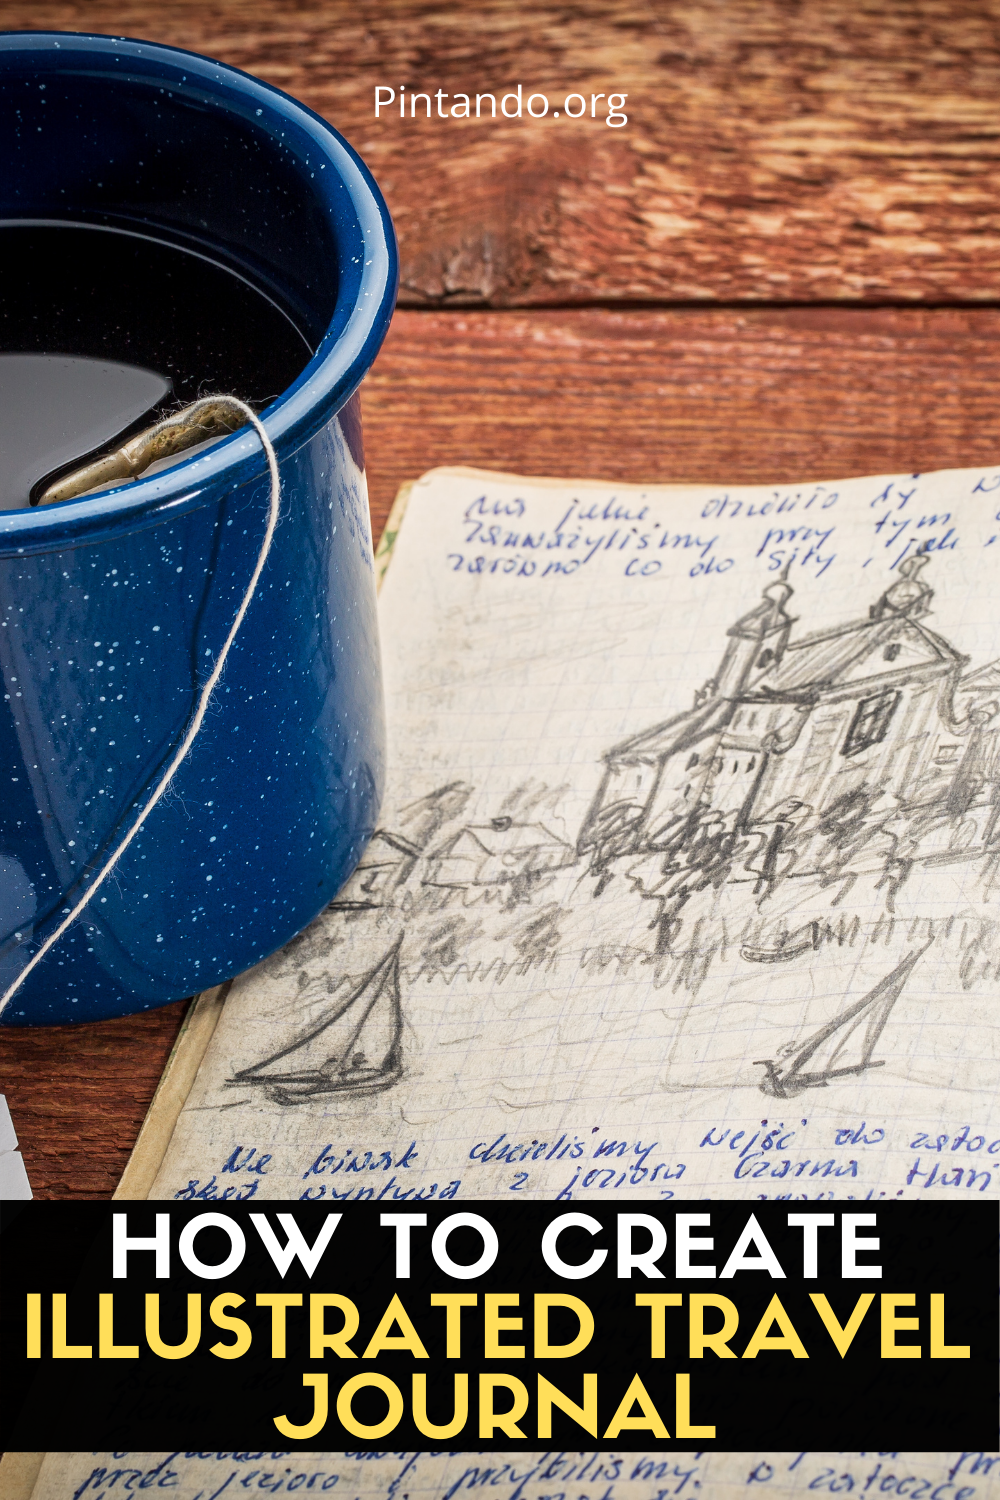 HOW TO CREATE ILLUSTRATED TRAVEL JOURNAL (1)